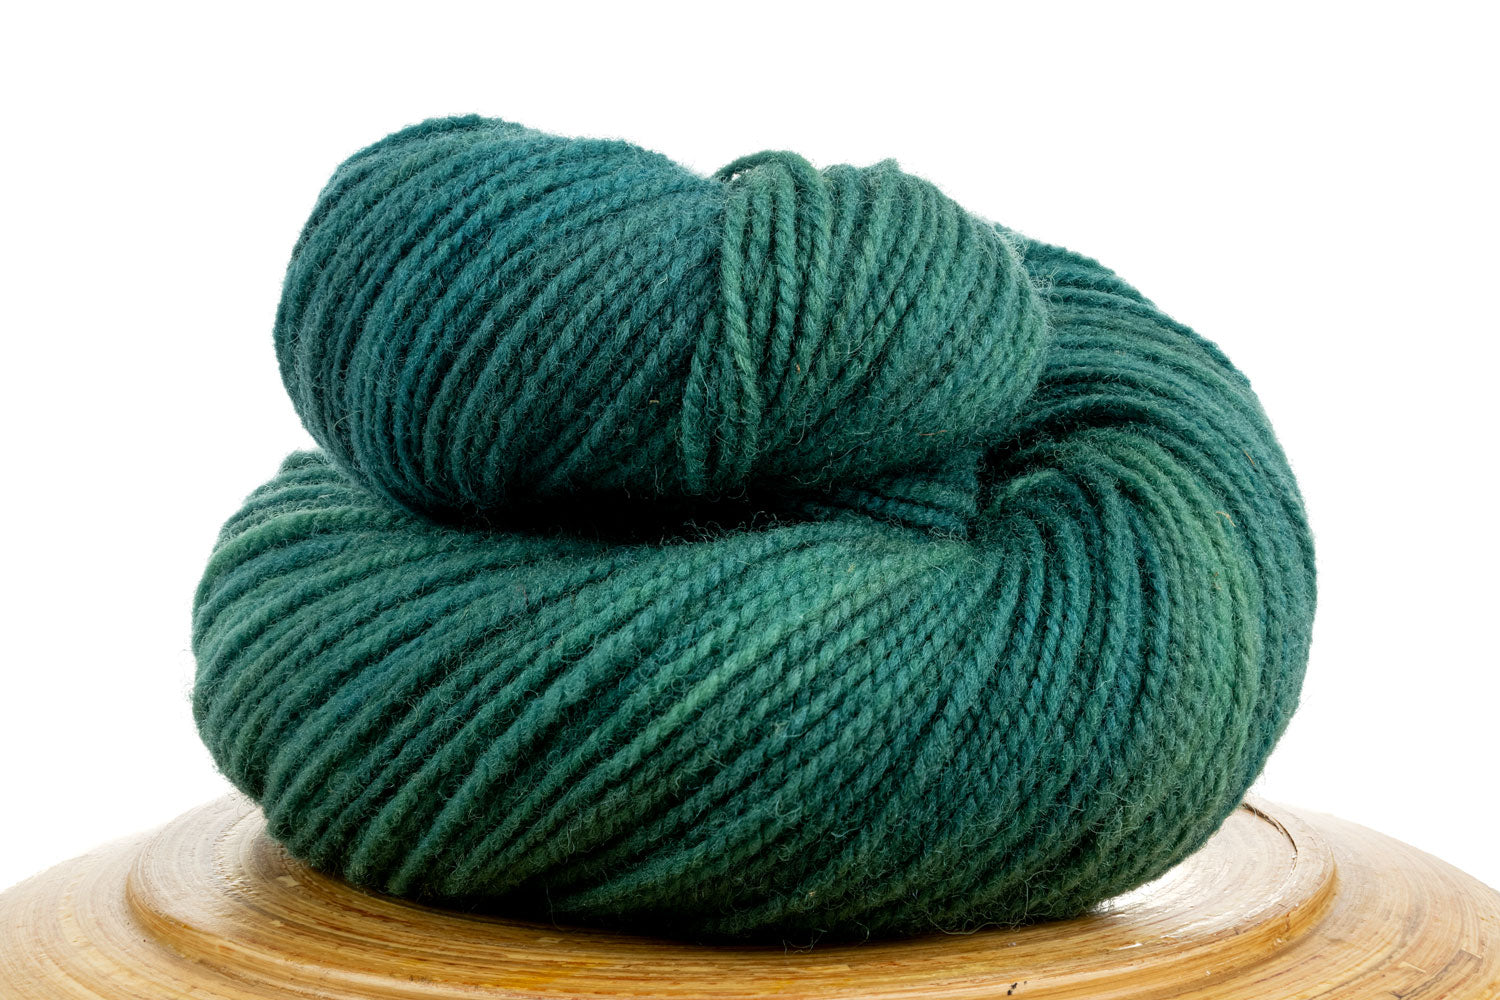 Winfield Canadian hand-dyed yarn in Early Morning Rain, a light blue-green